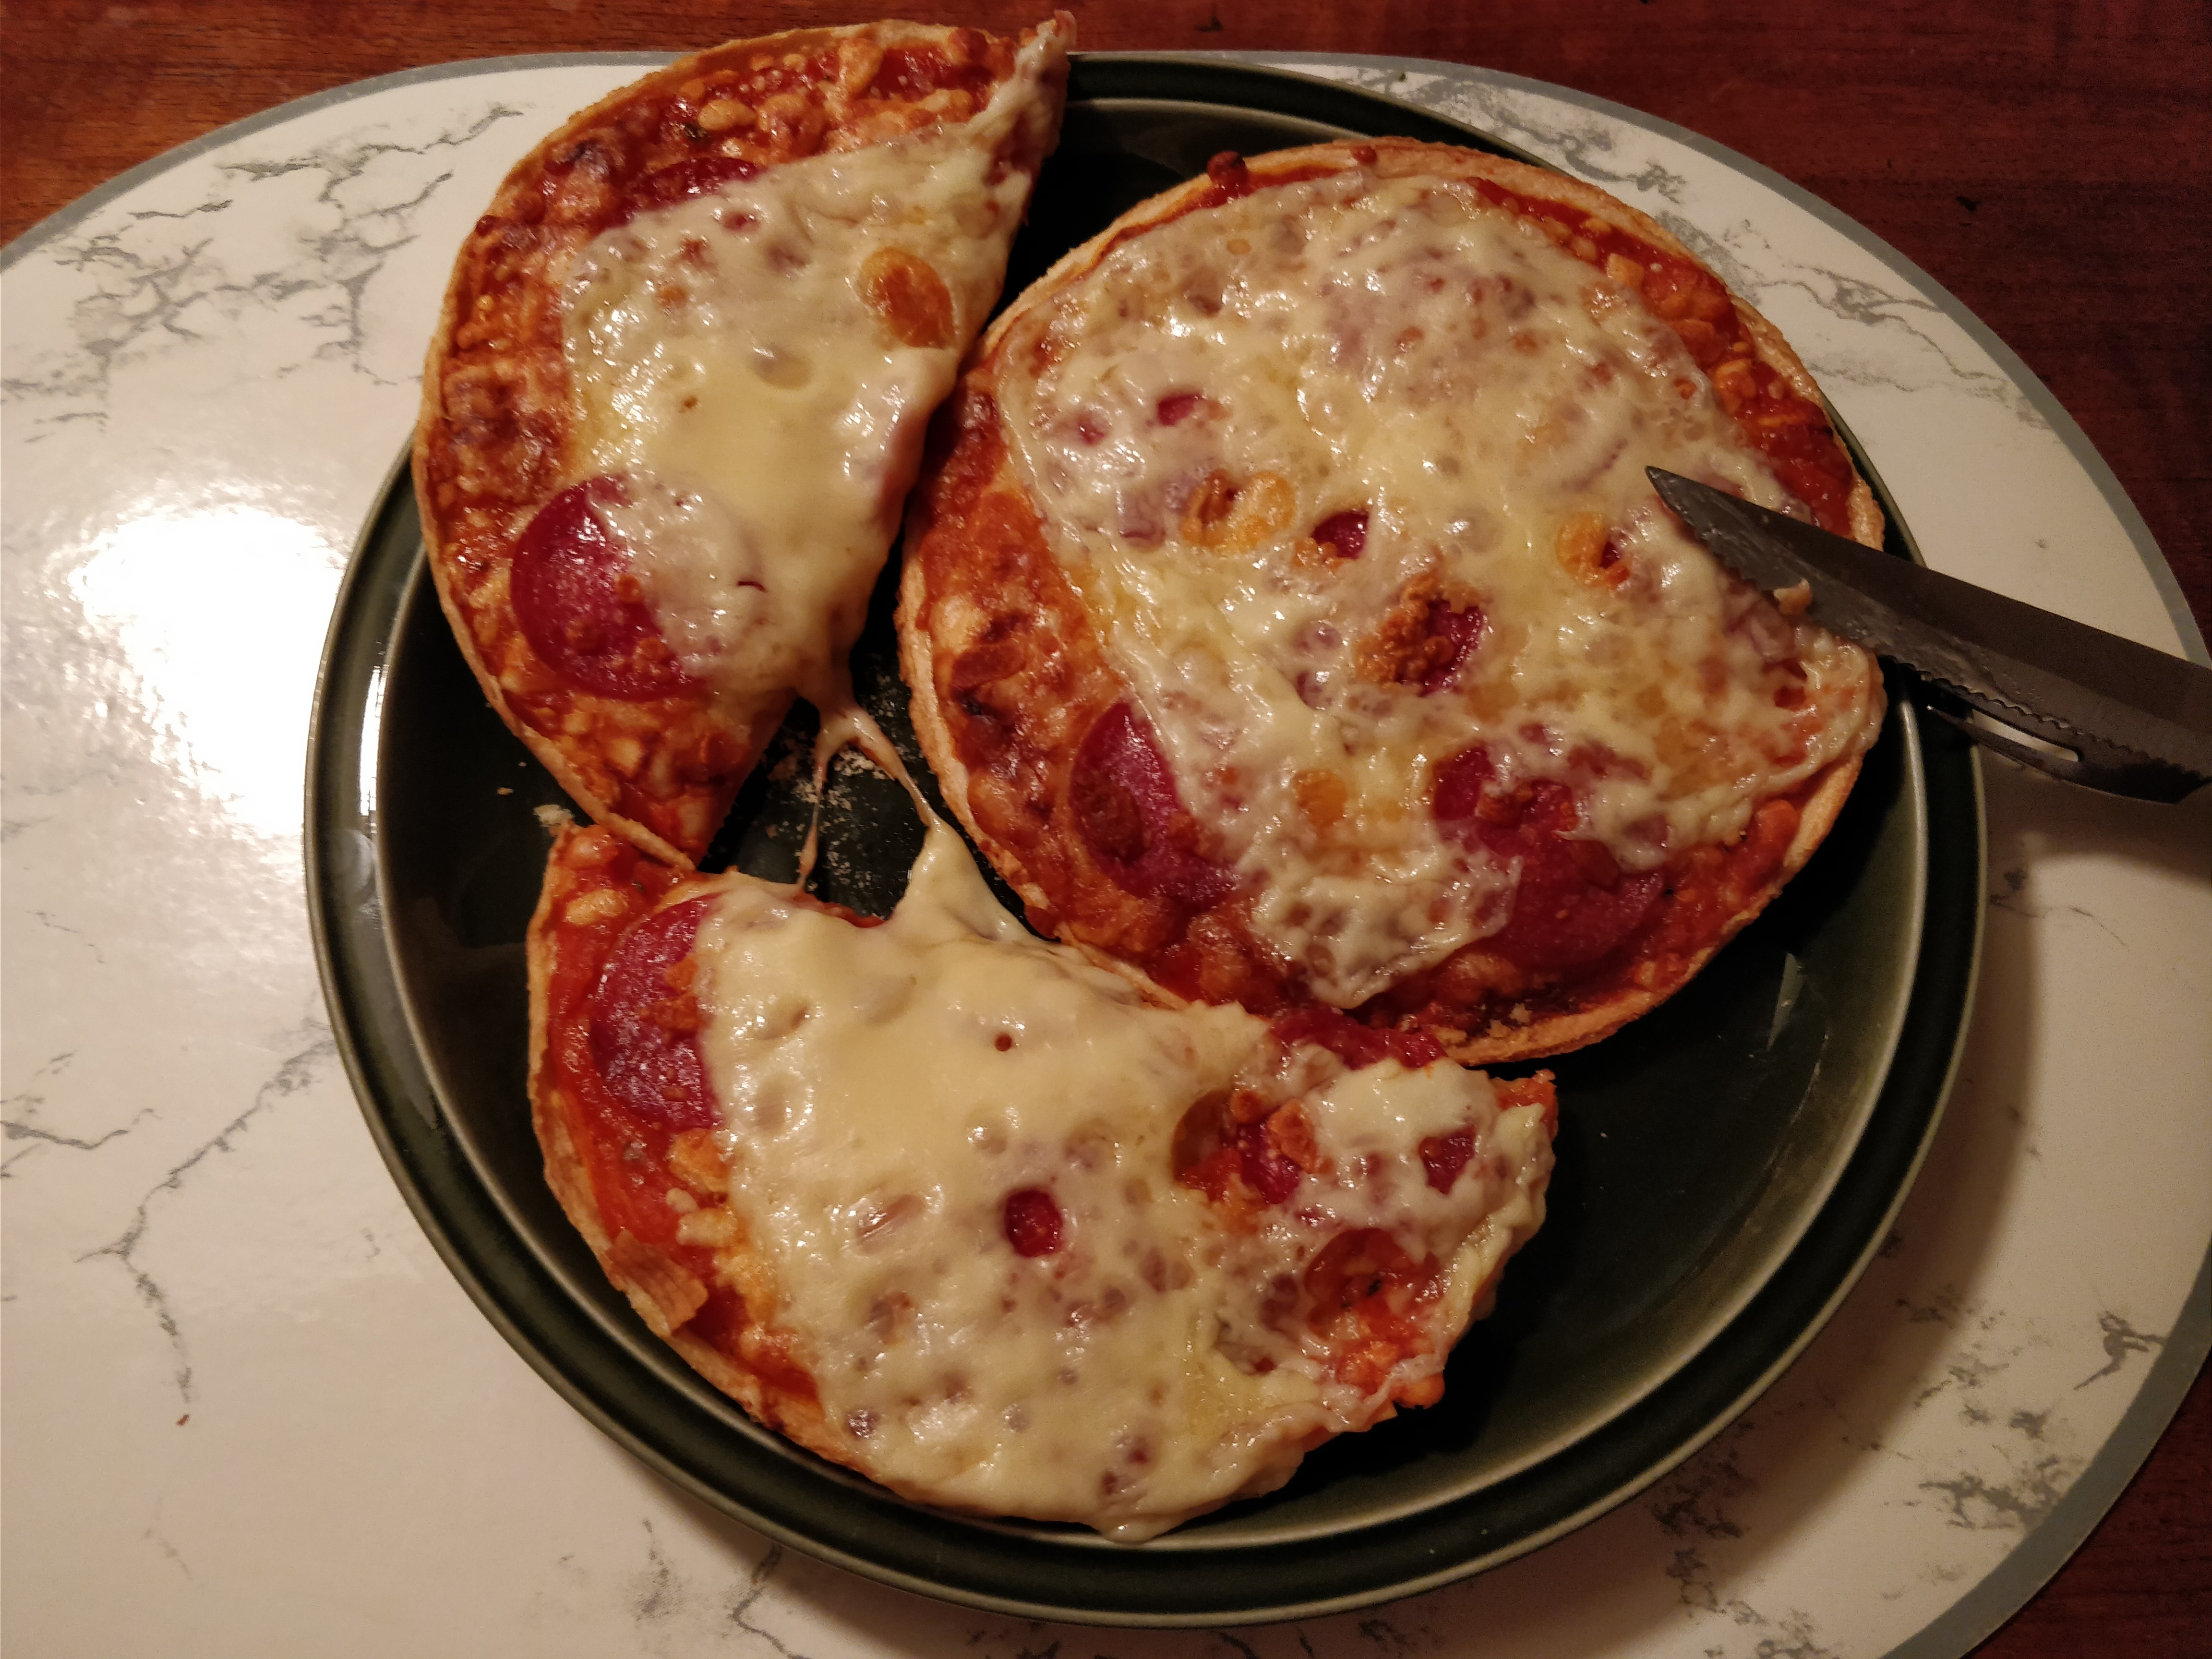 https://foodloader.net/nico_2017-10-16_zwei-mini-salami-pizzen.jpg